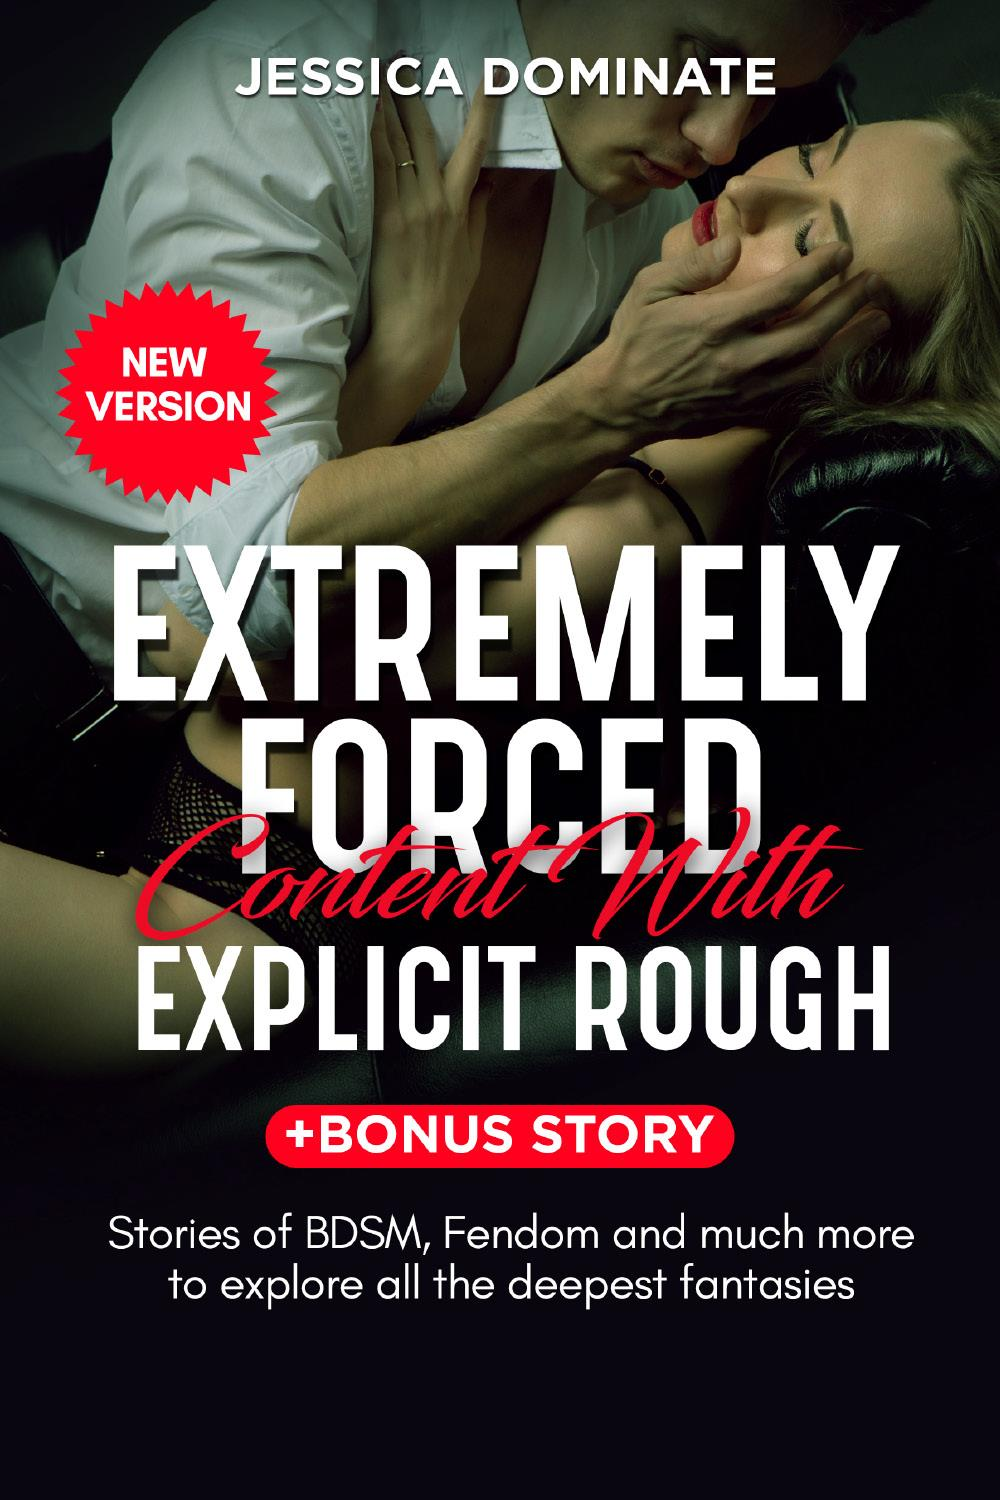 Extremely Forced Content With Explicit Rough + Bonus Story. Stories of BDSM, Fendom and much more to explore all the deepest fantasies! (New Version)